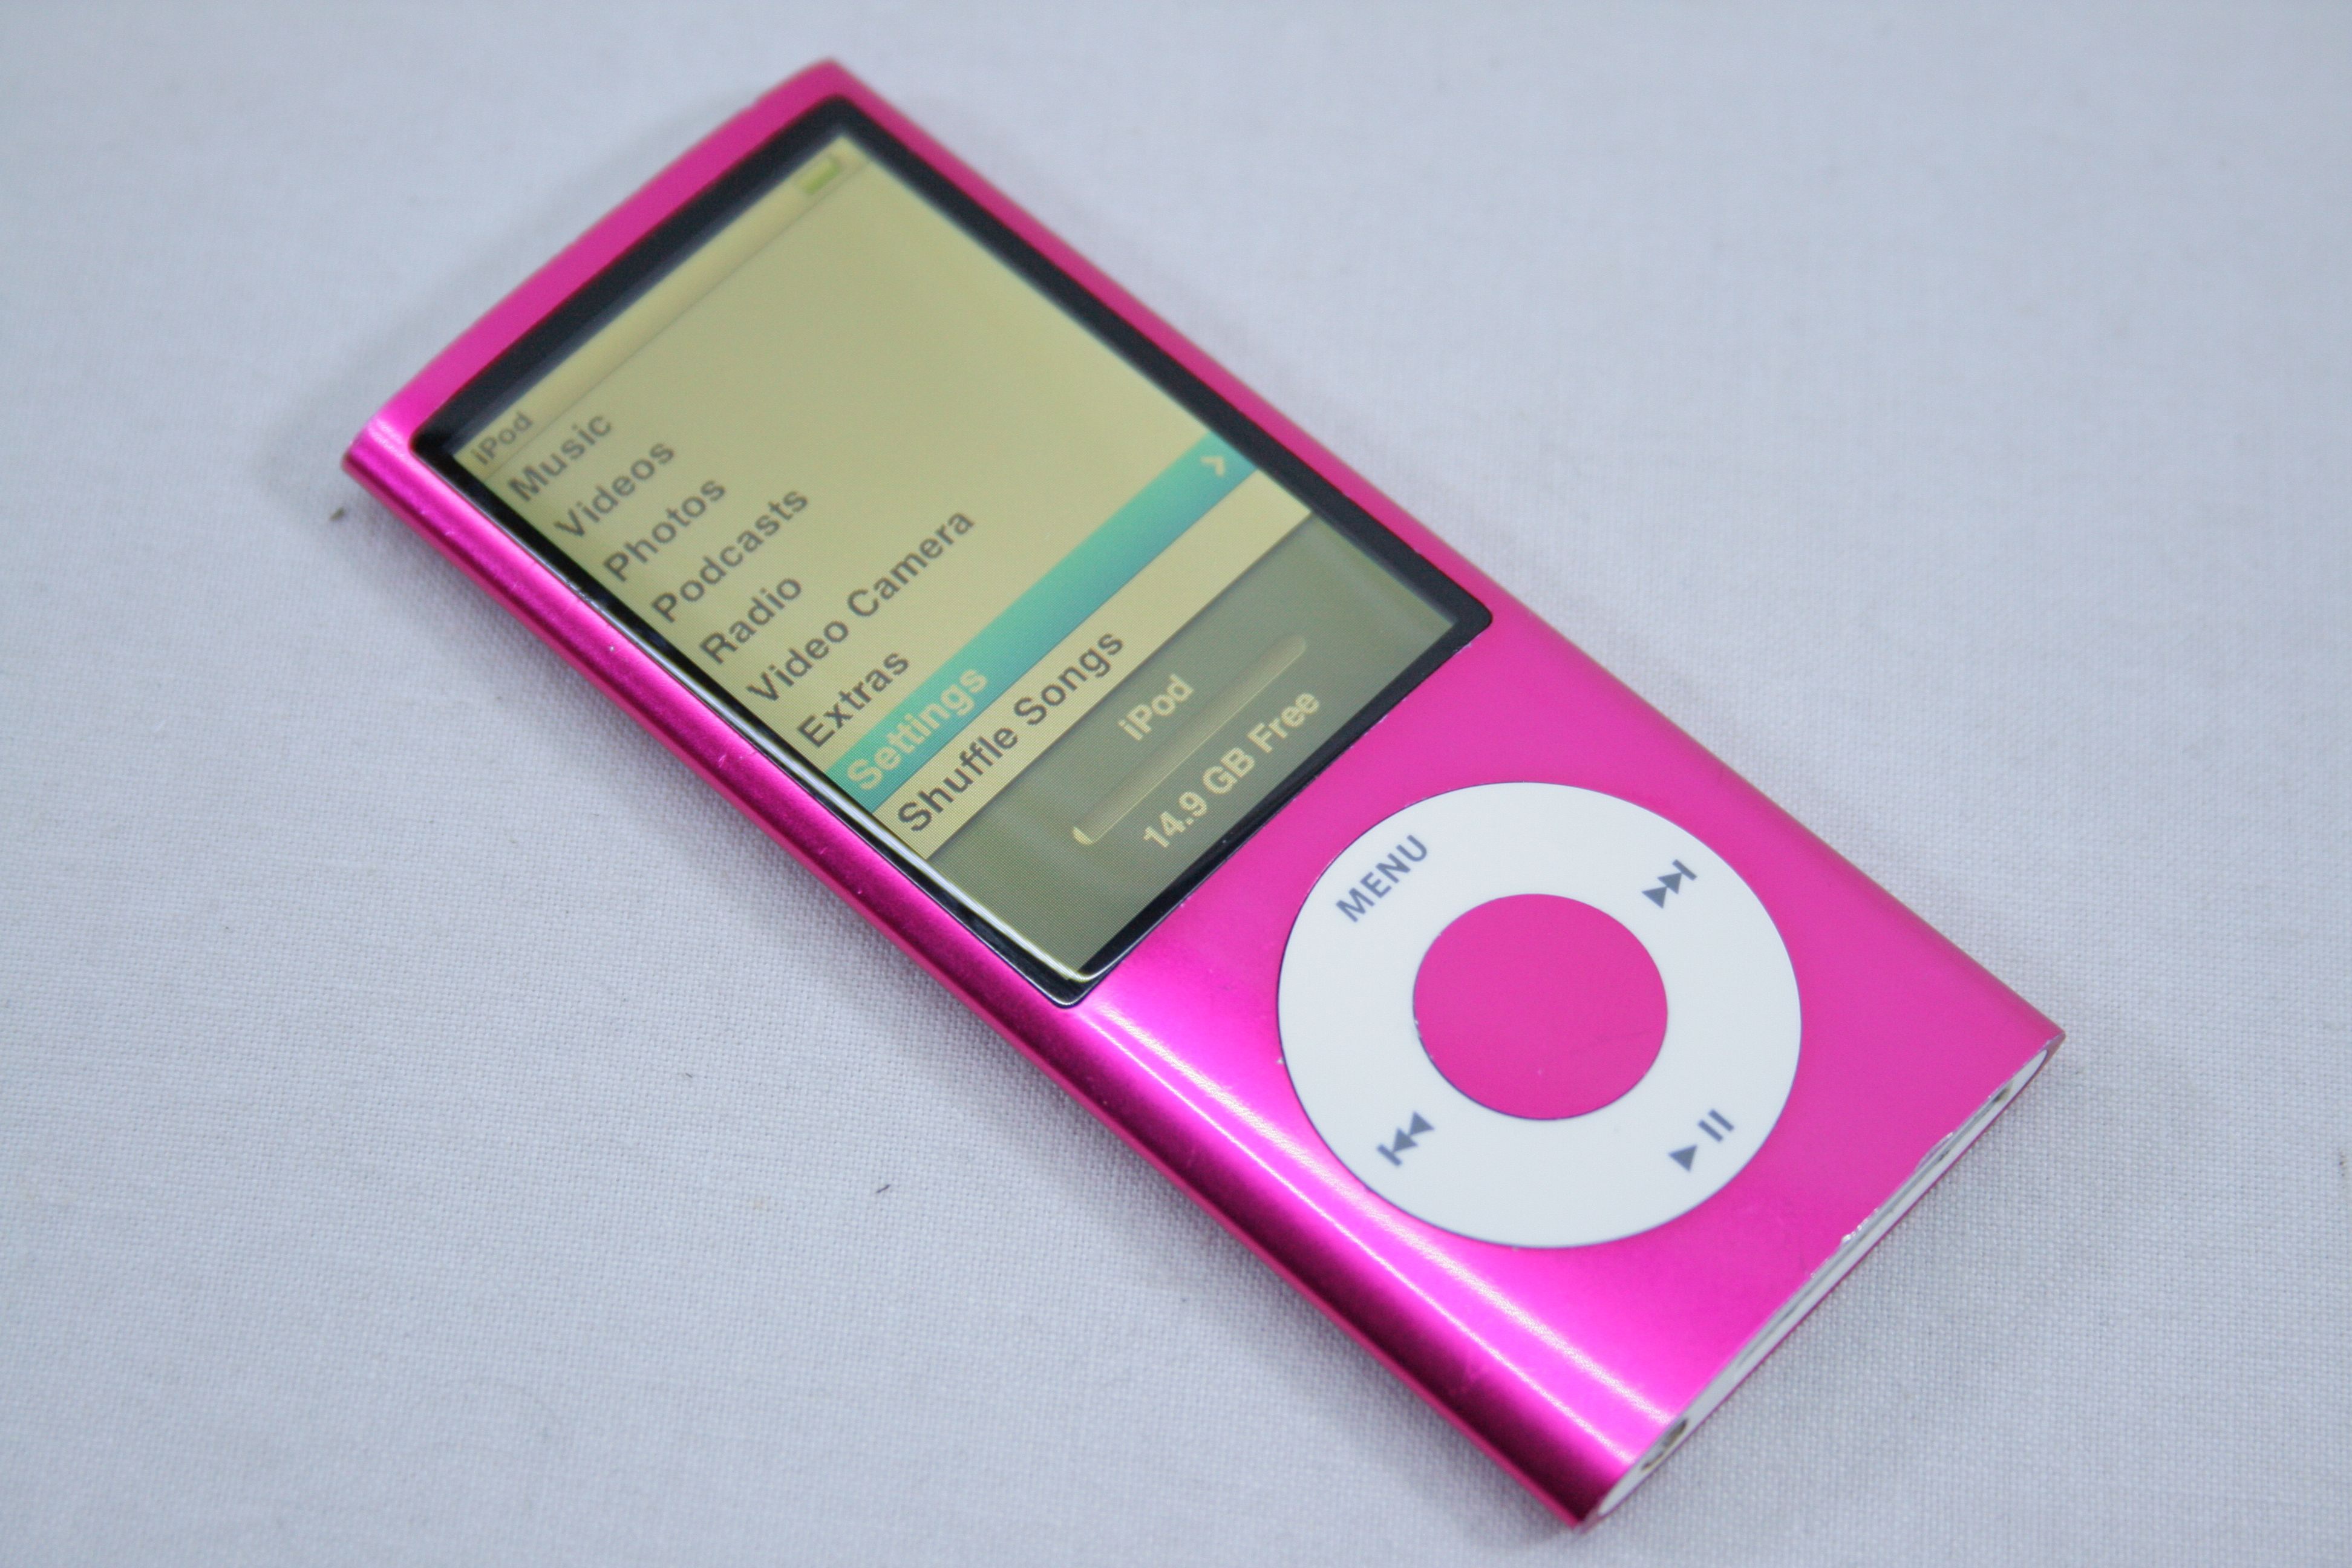 apple ipod nano 5th generation pink 16gb ebay. Black Bedroom Furniture Sets. Home Design Ideas